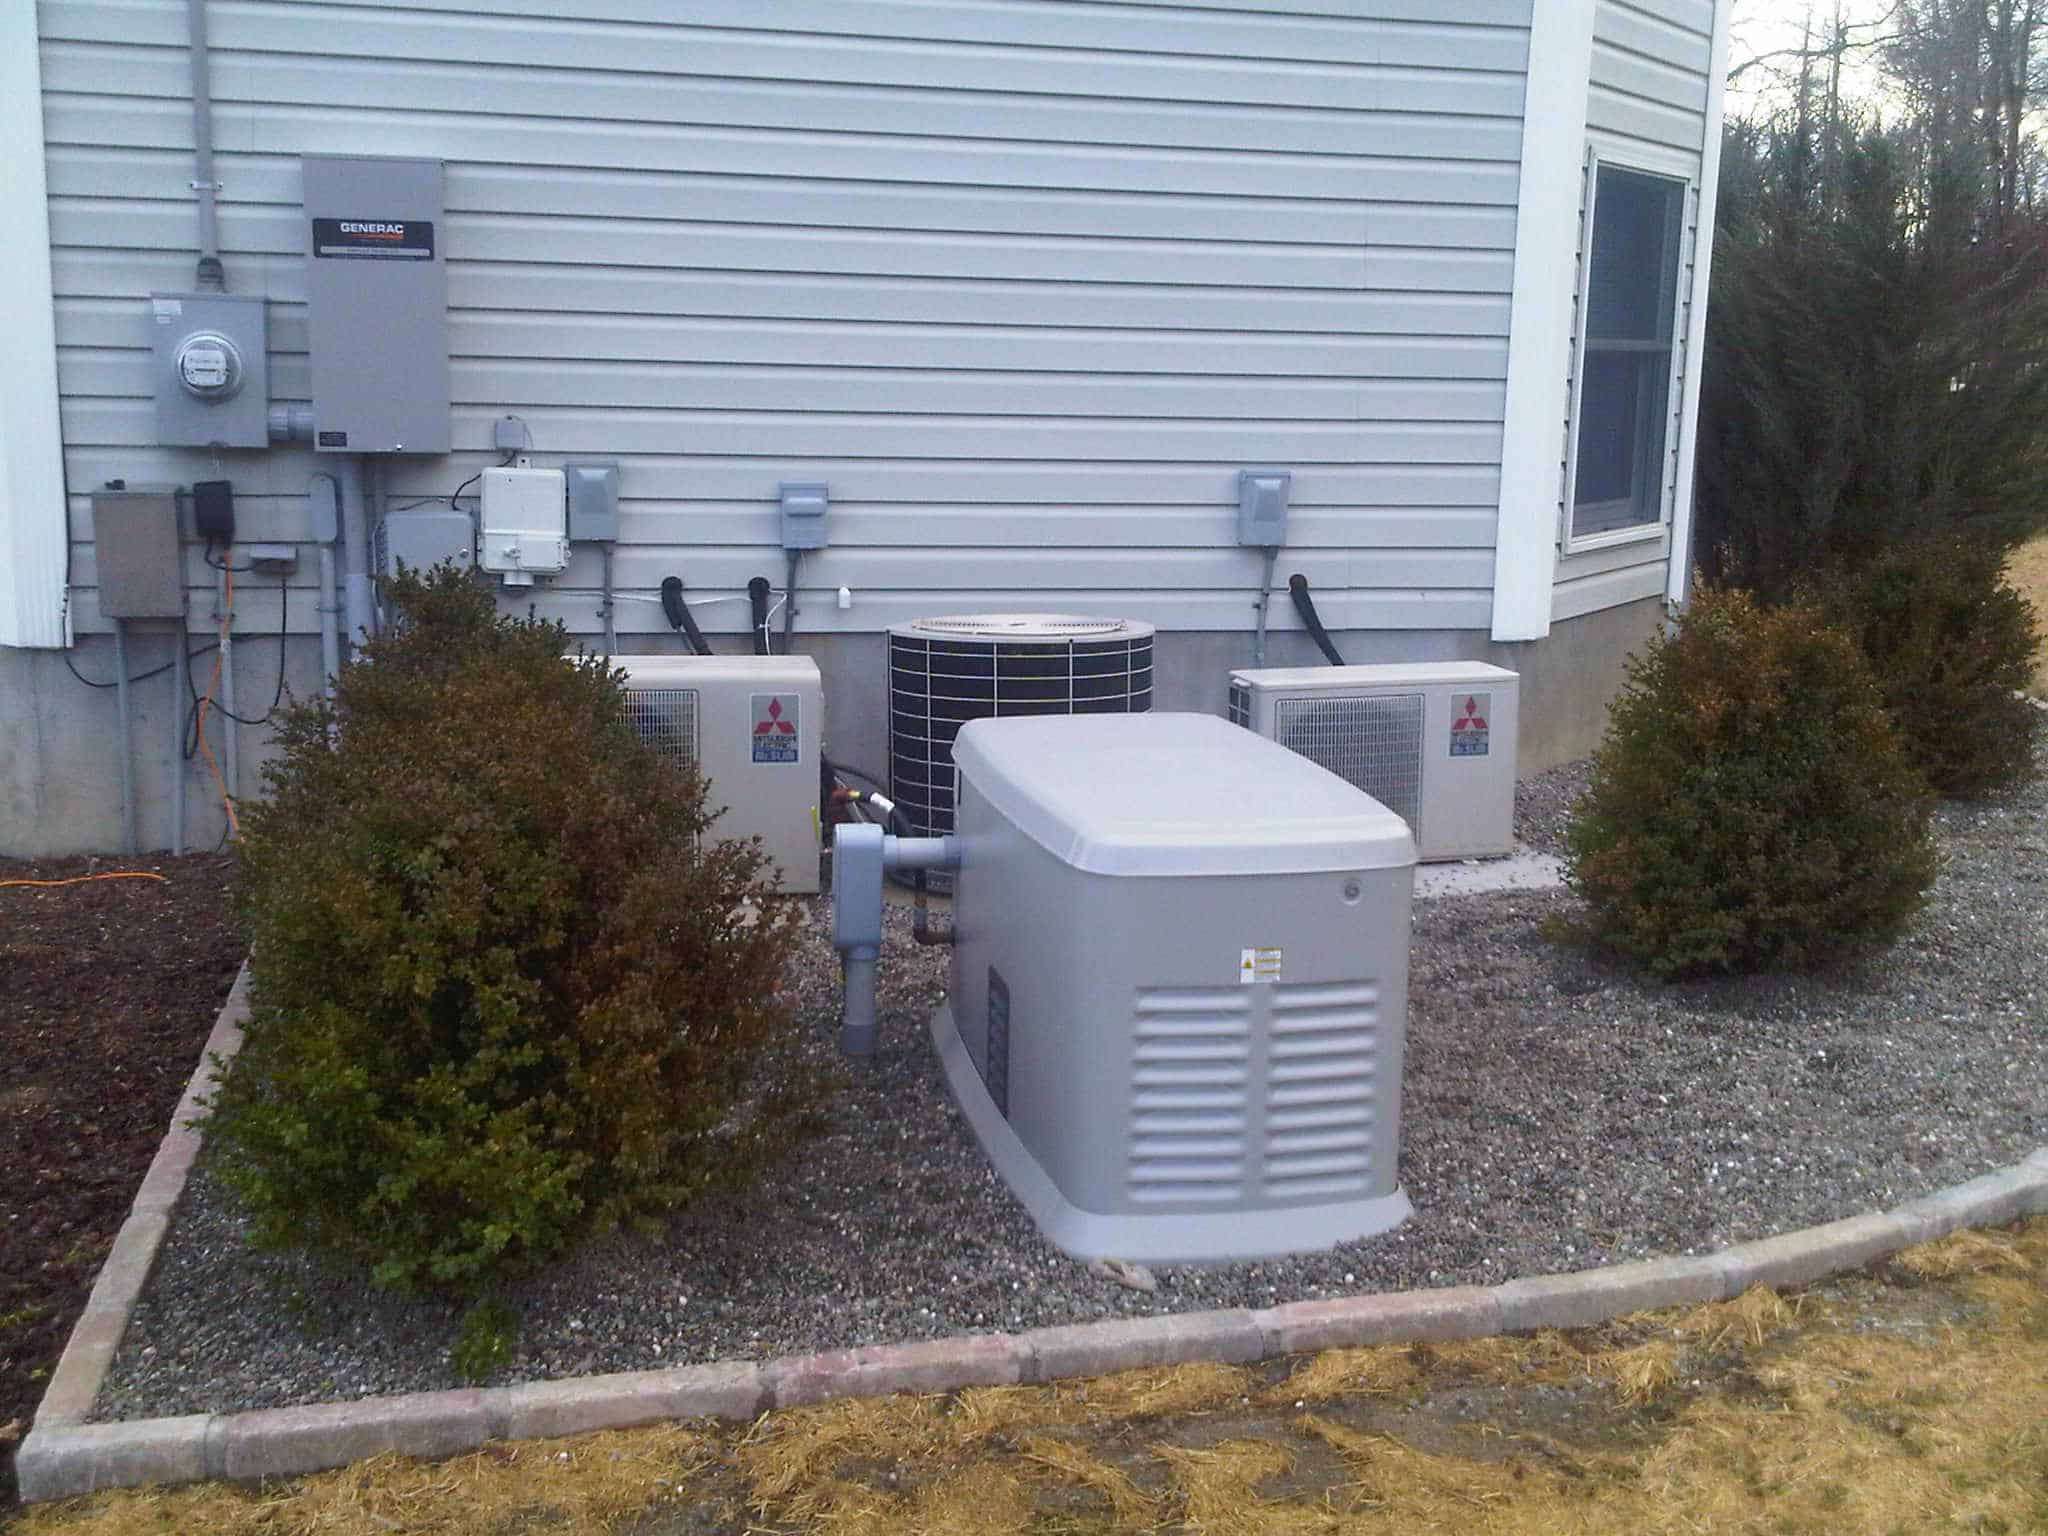 Generac standby connected to automatic transfer swtich